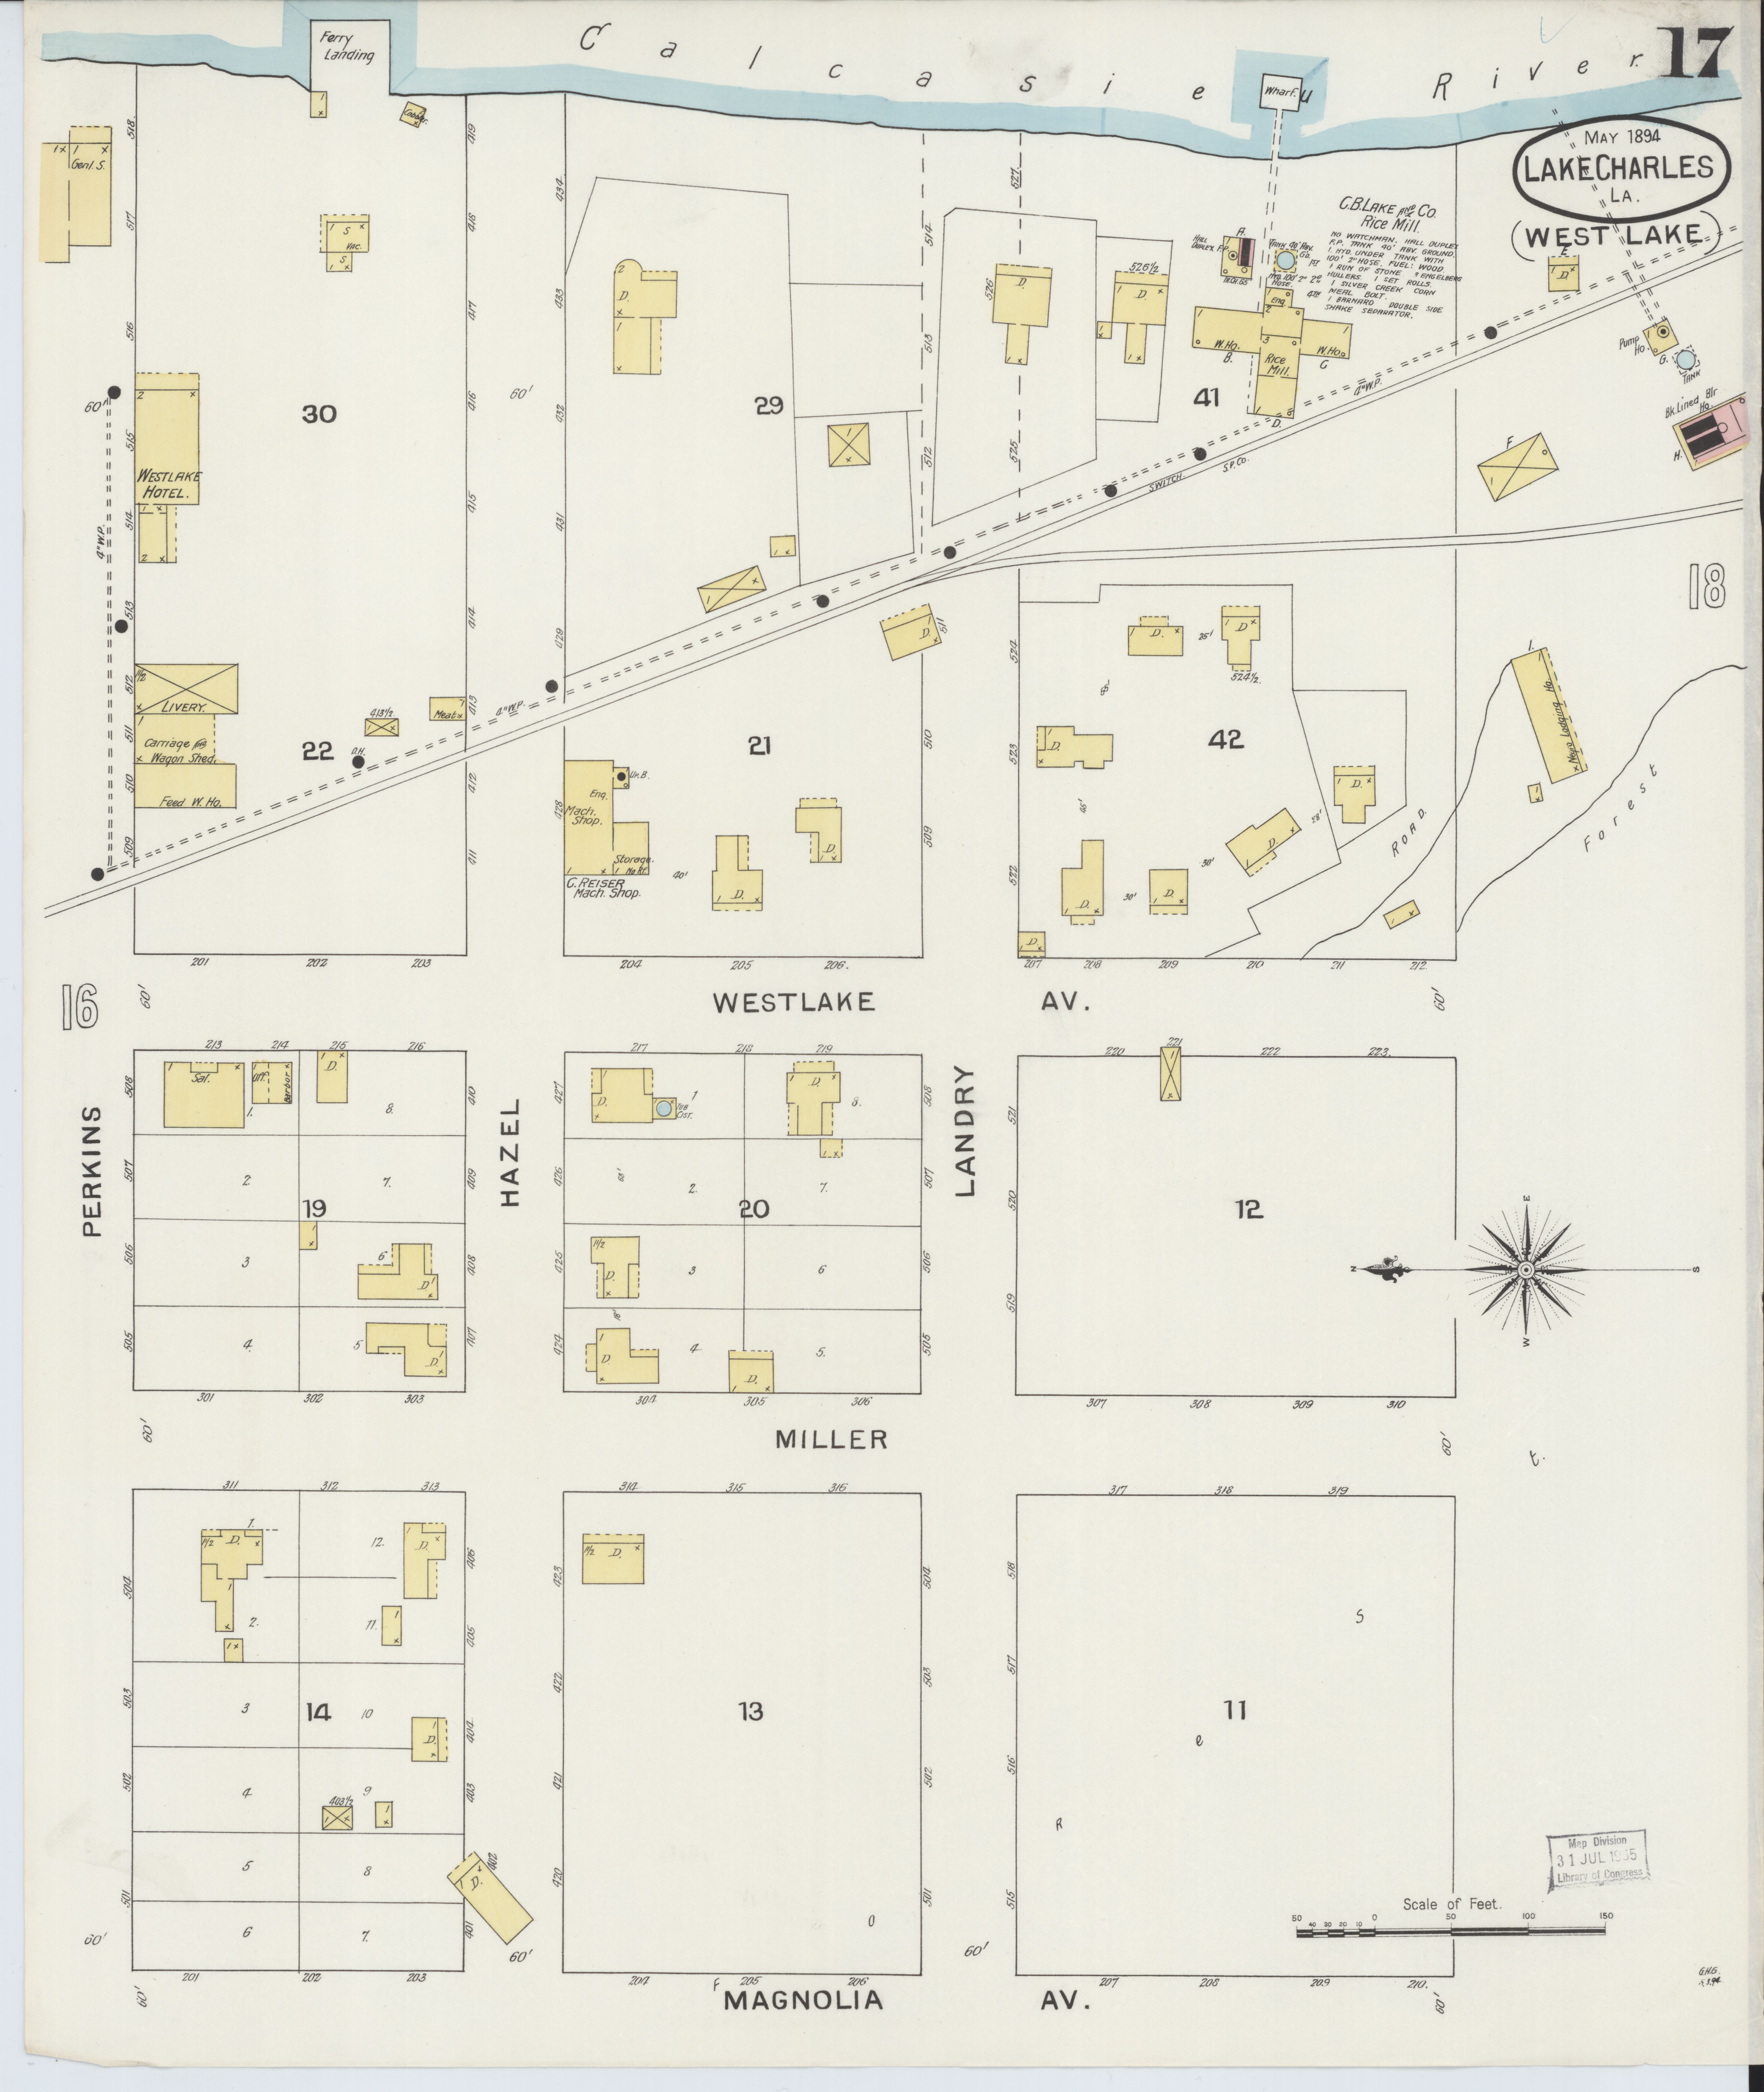 File:Sanborn Fire Insurance Map from Lake Charles, Calcasieu